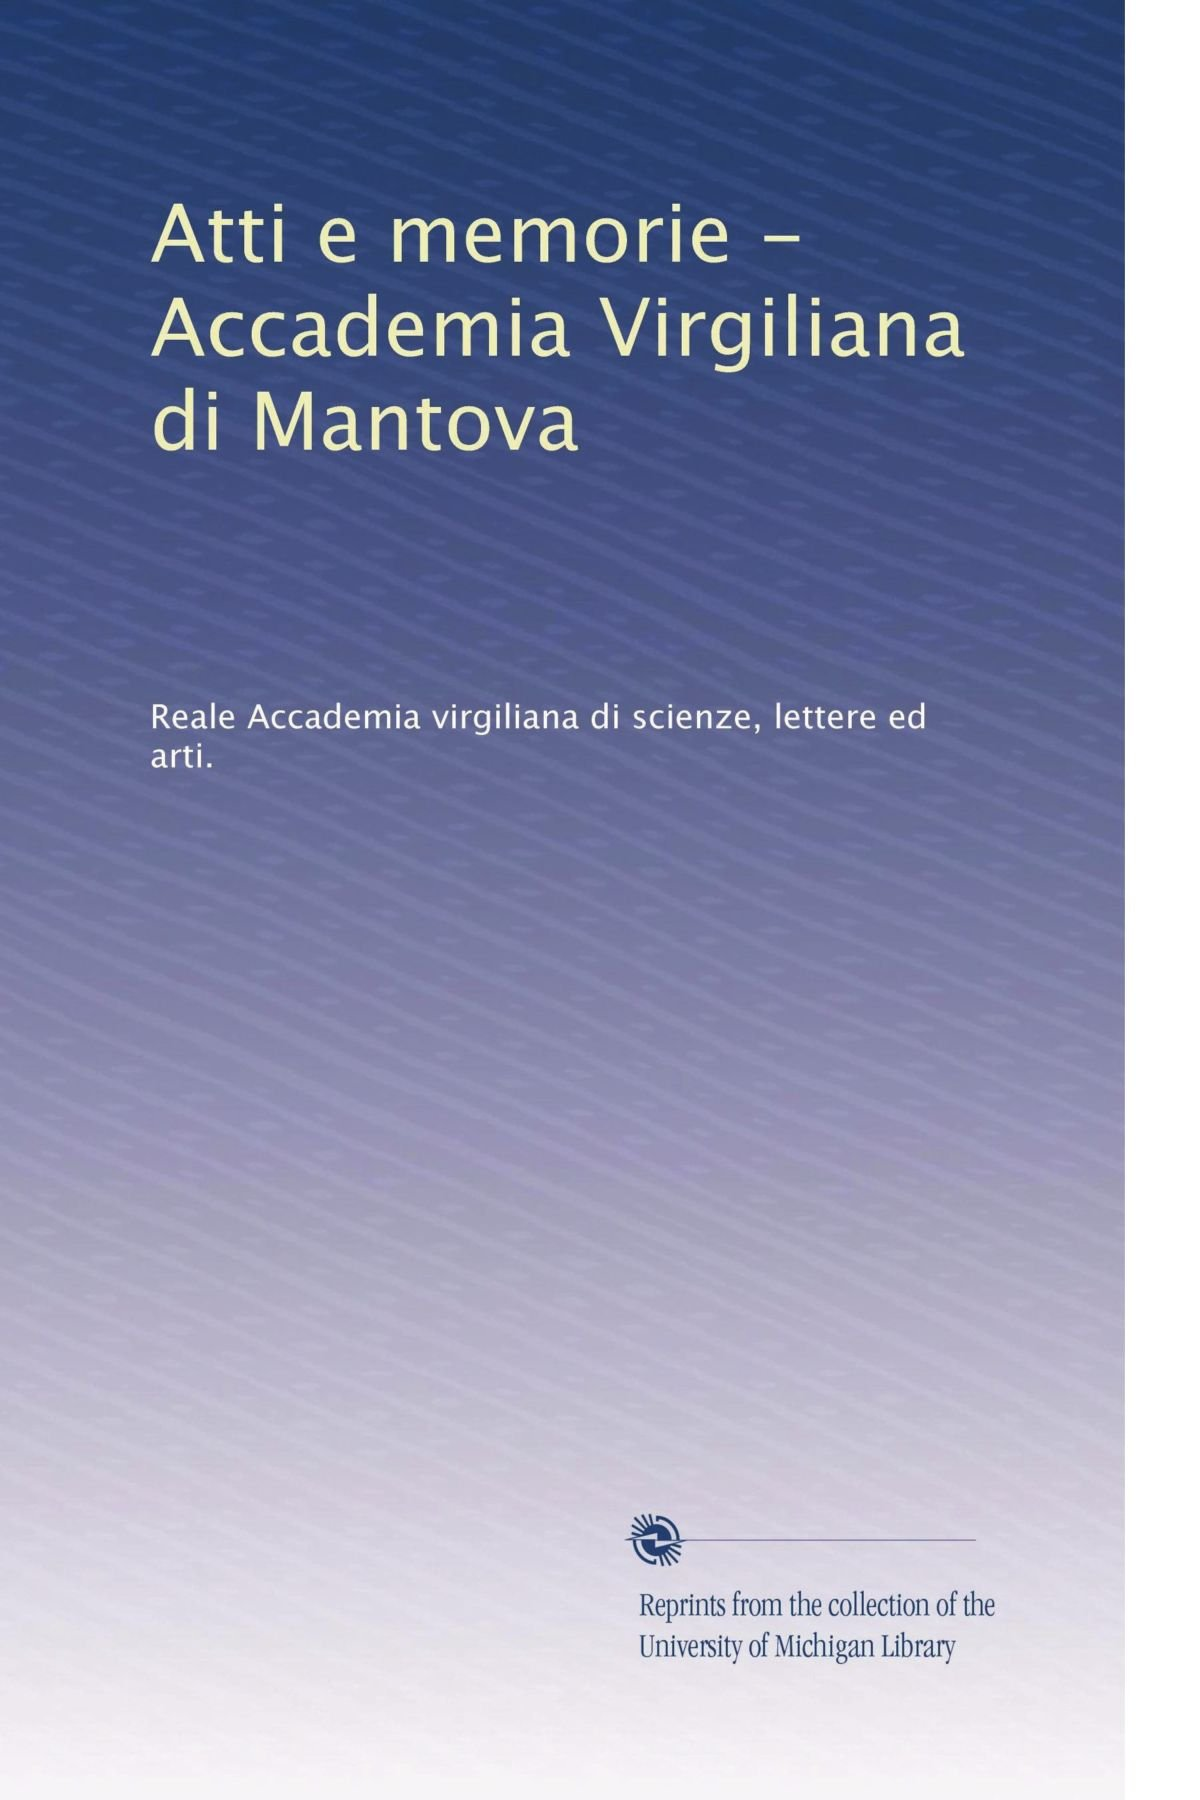 Download Atti e memorie - Accademia Virgiliana di Mantova (Volume 6) (Italian Edition) pdf